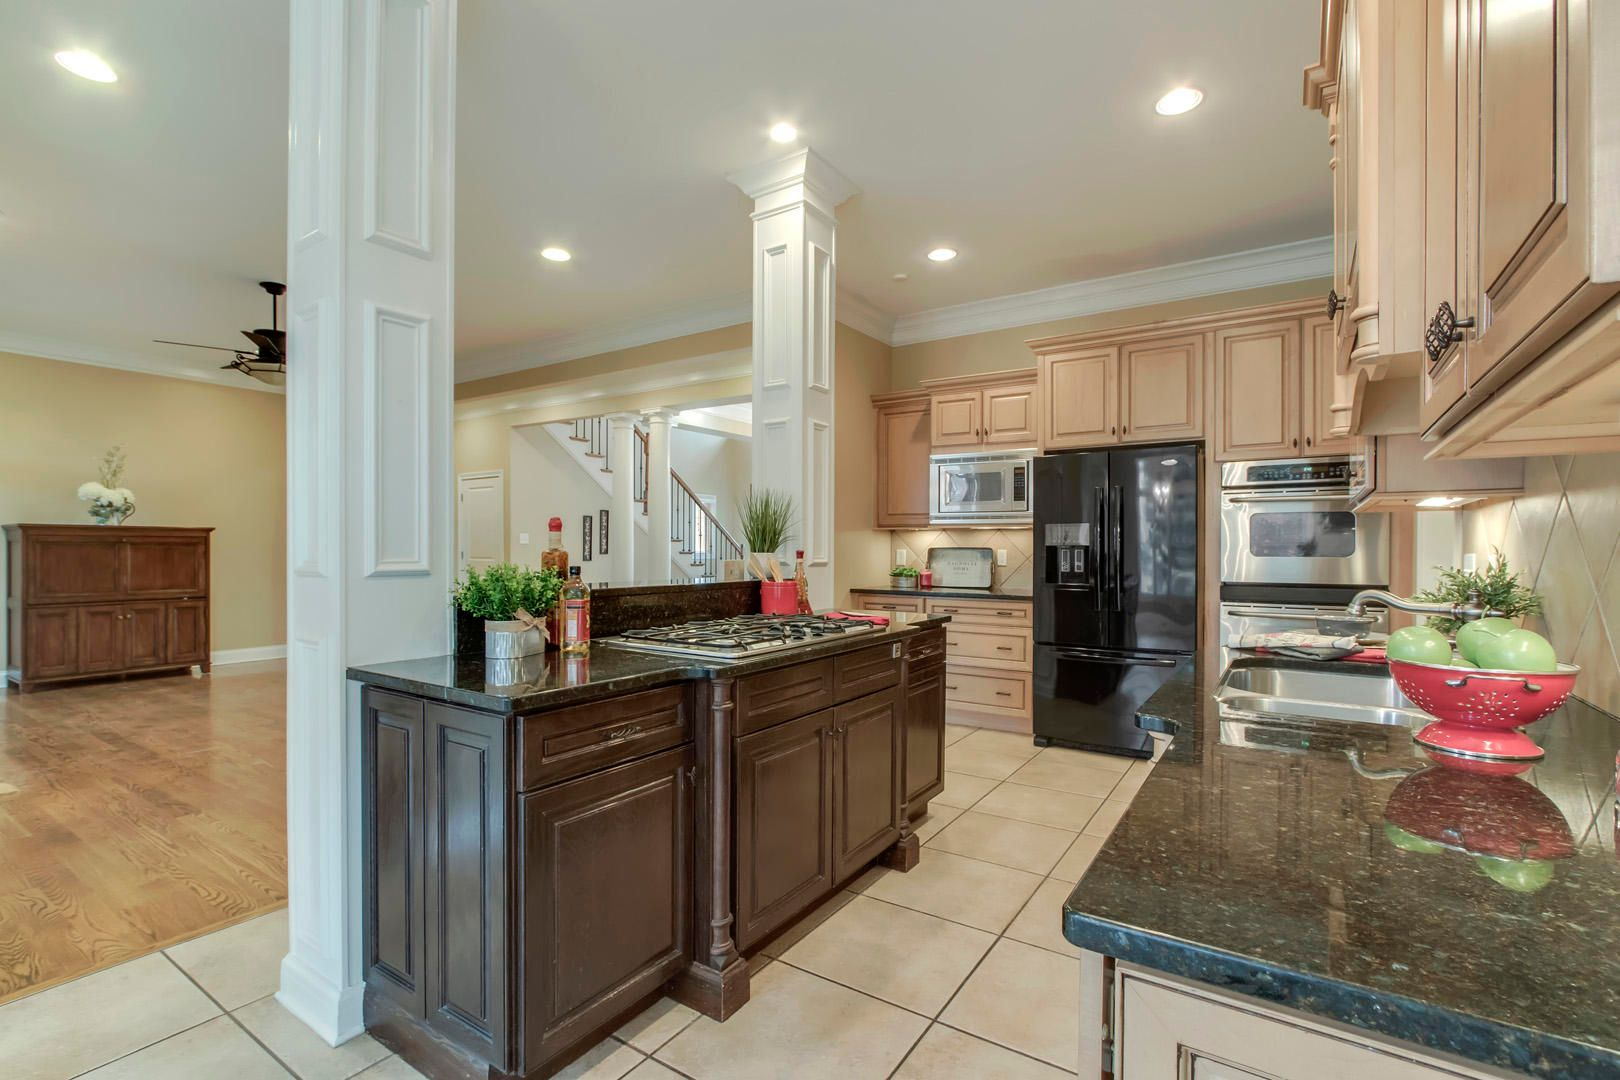 20_RedgraveRoad_1746_Kitchen03